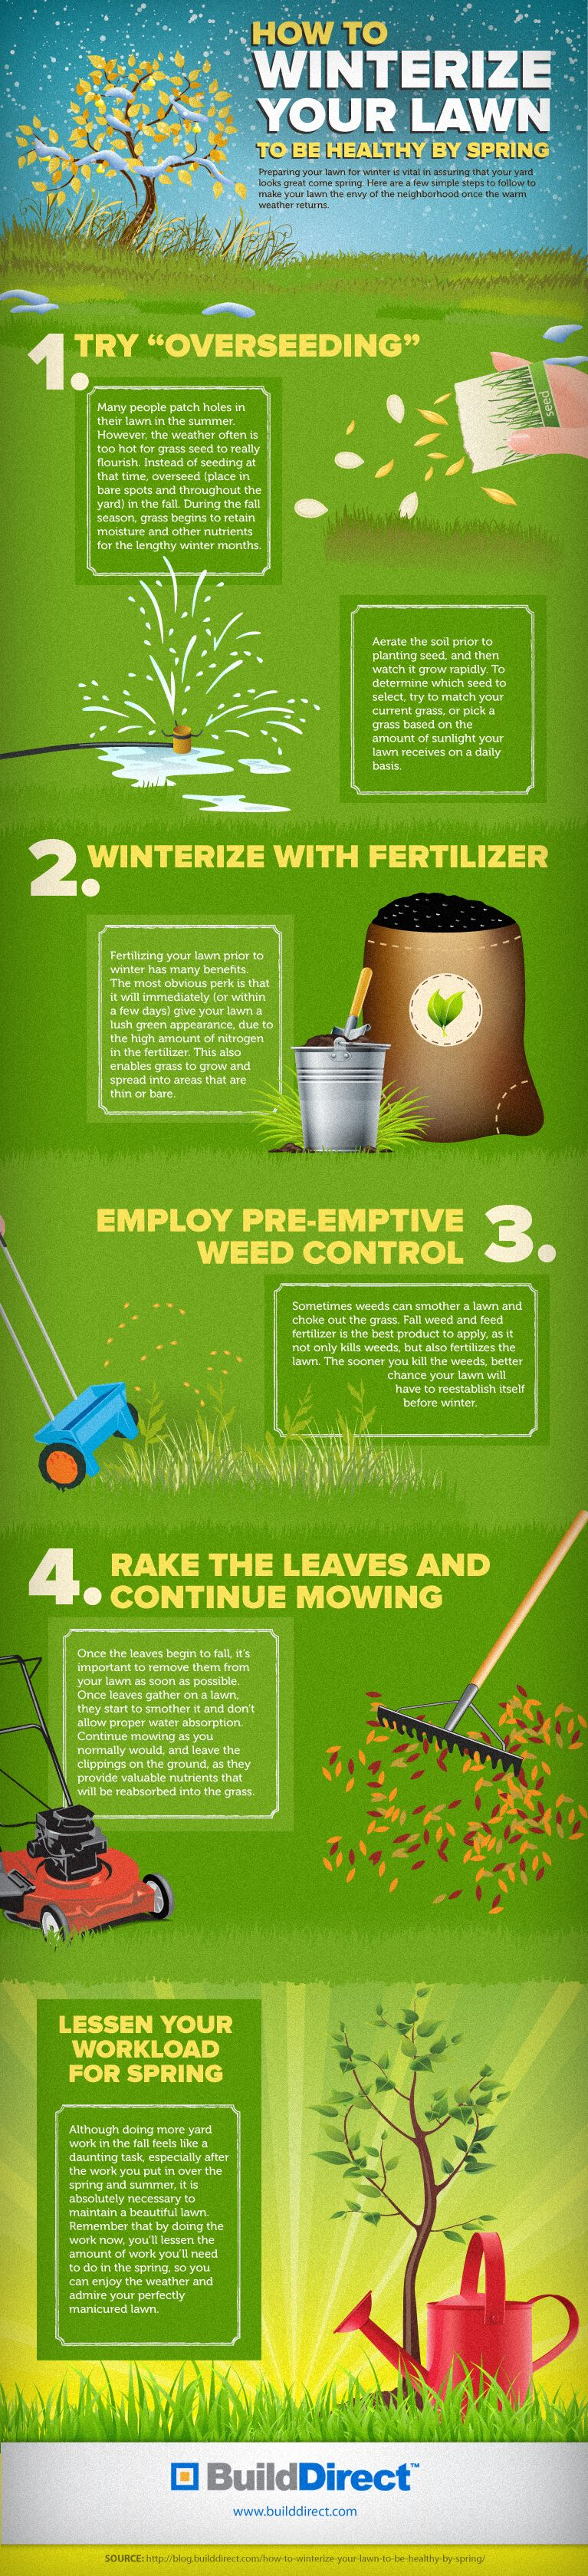 How To Winterize Your Lawn An Infographic Lawn care